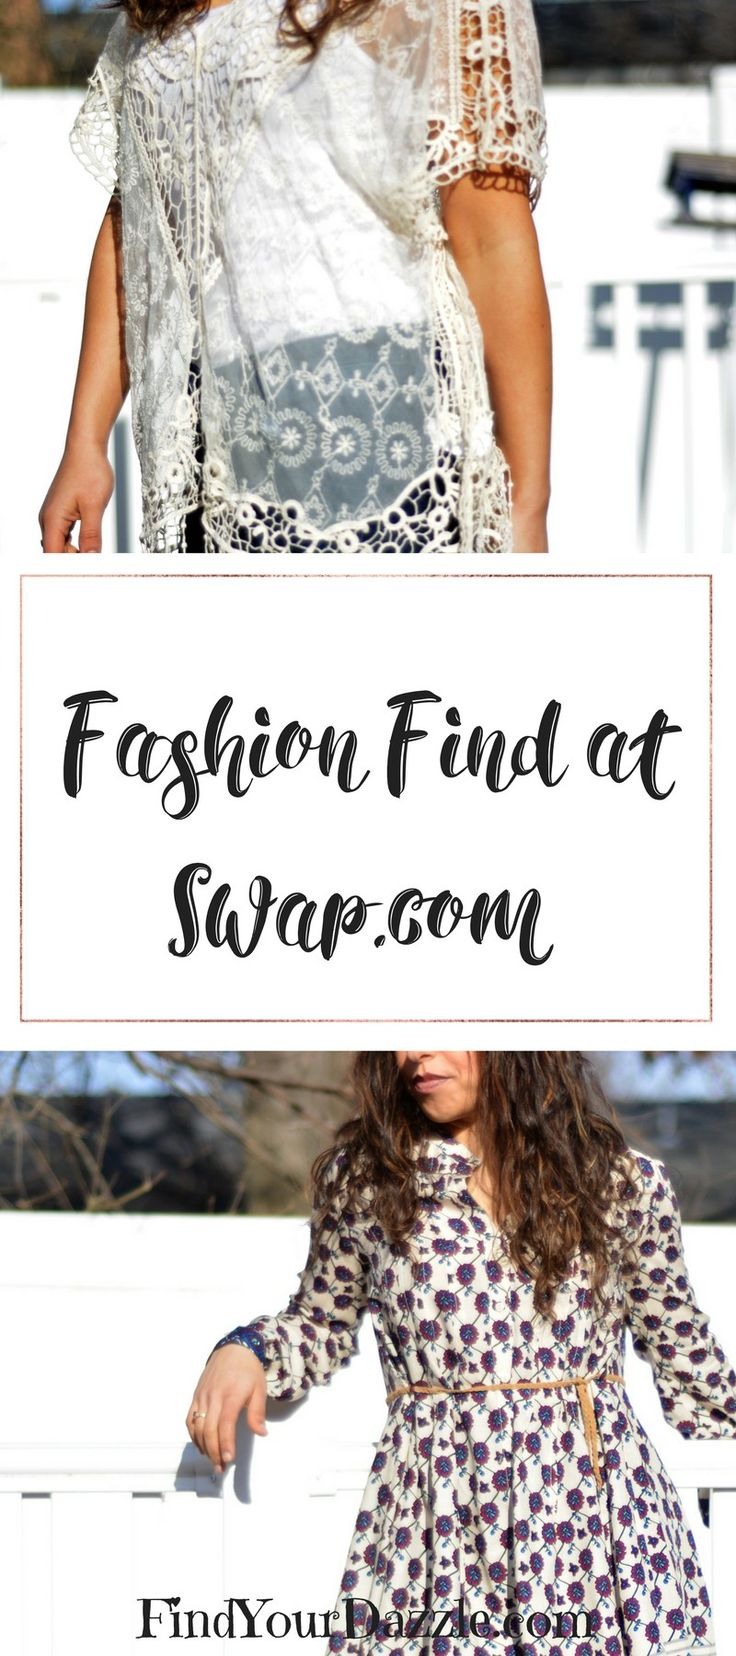 Fashion finds from online consignment shop swap.com! #fashion #consignment #thriftshop